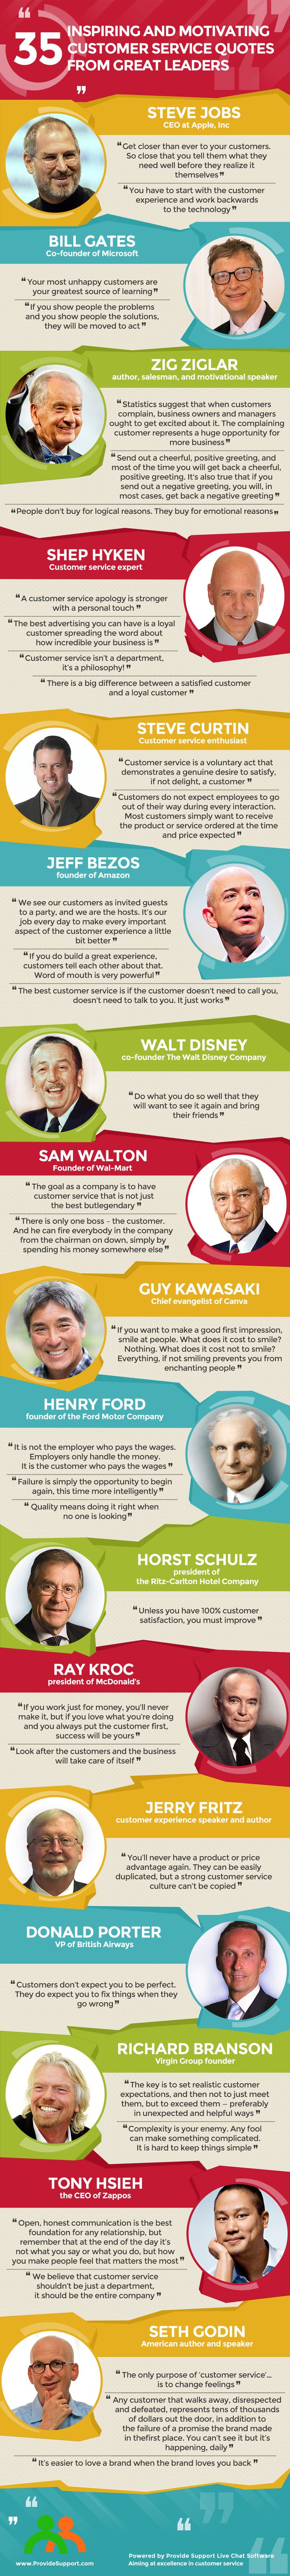 35 Inspiring Customer Service Quotes from Leaders (Inforgraphic): http://www.providesupport.com/blog/35-inspiring-customer-service-quotes-from-leaders/ #customerservice #quotes